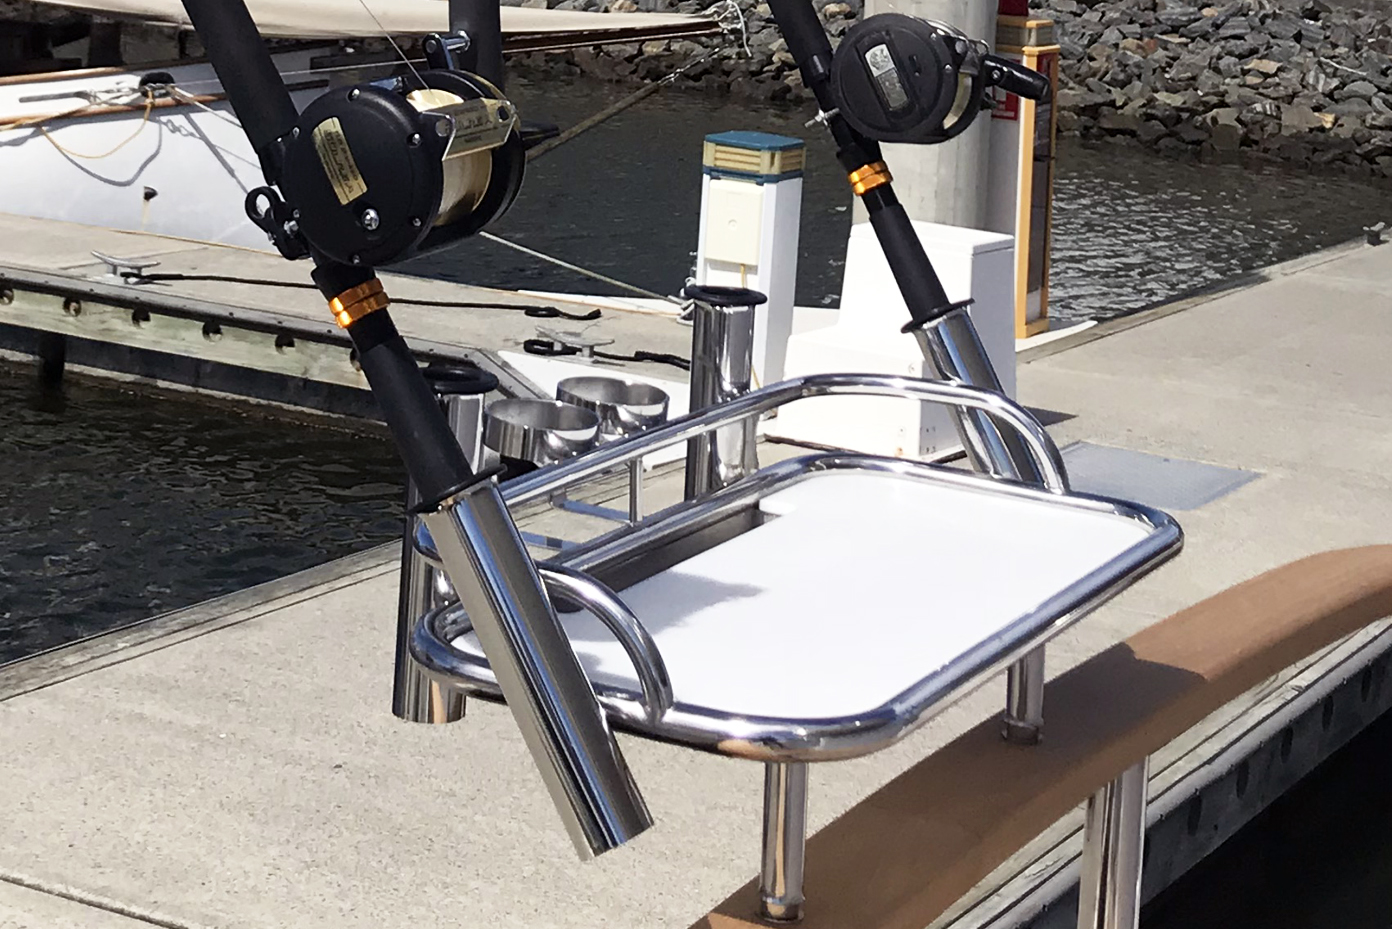 Stainless tubular bait board with rod holders